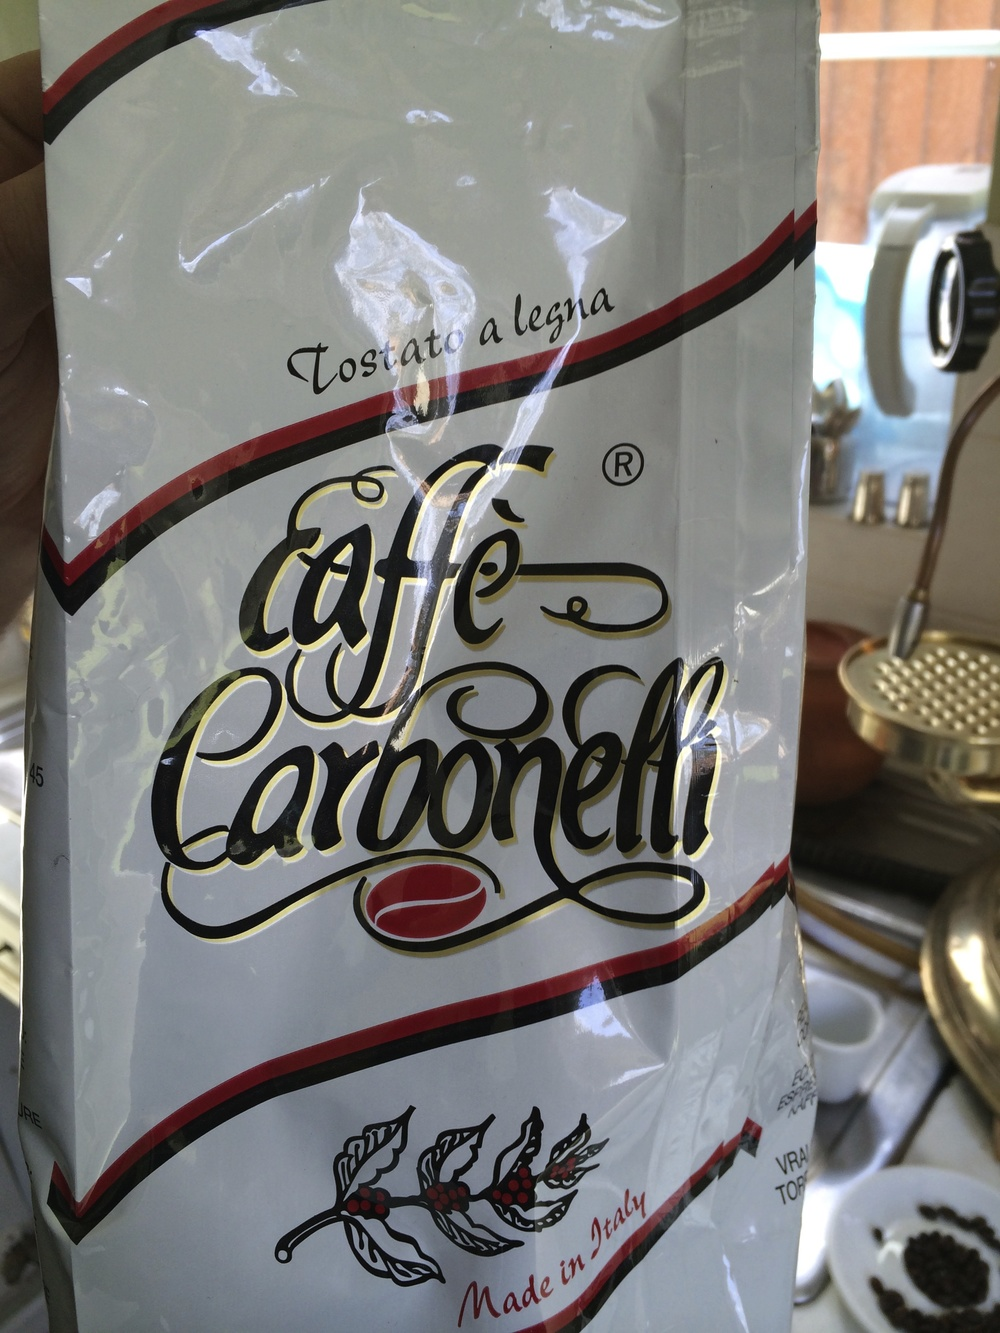 Caffe Carbonelli beans